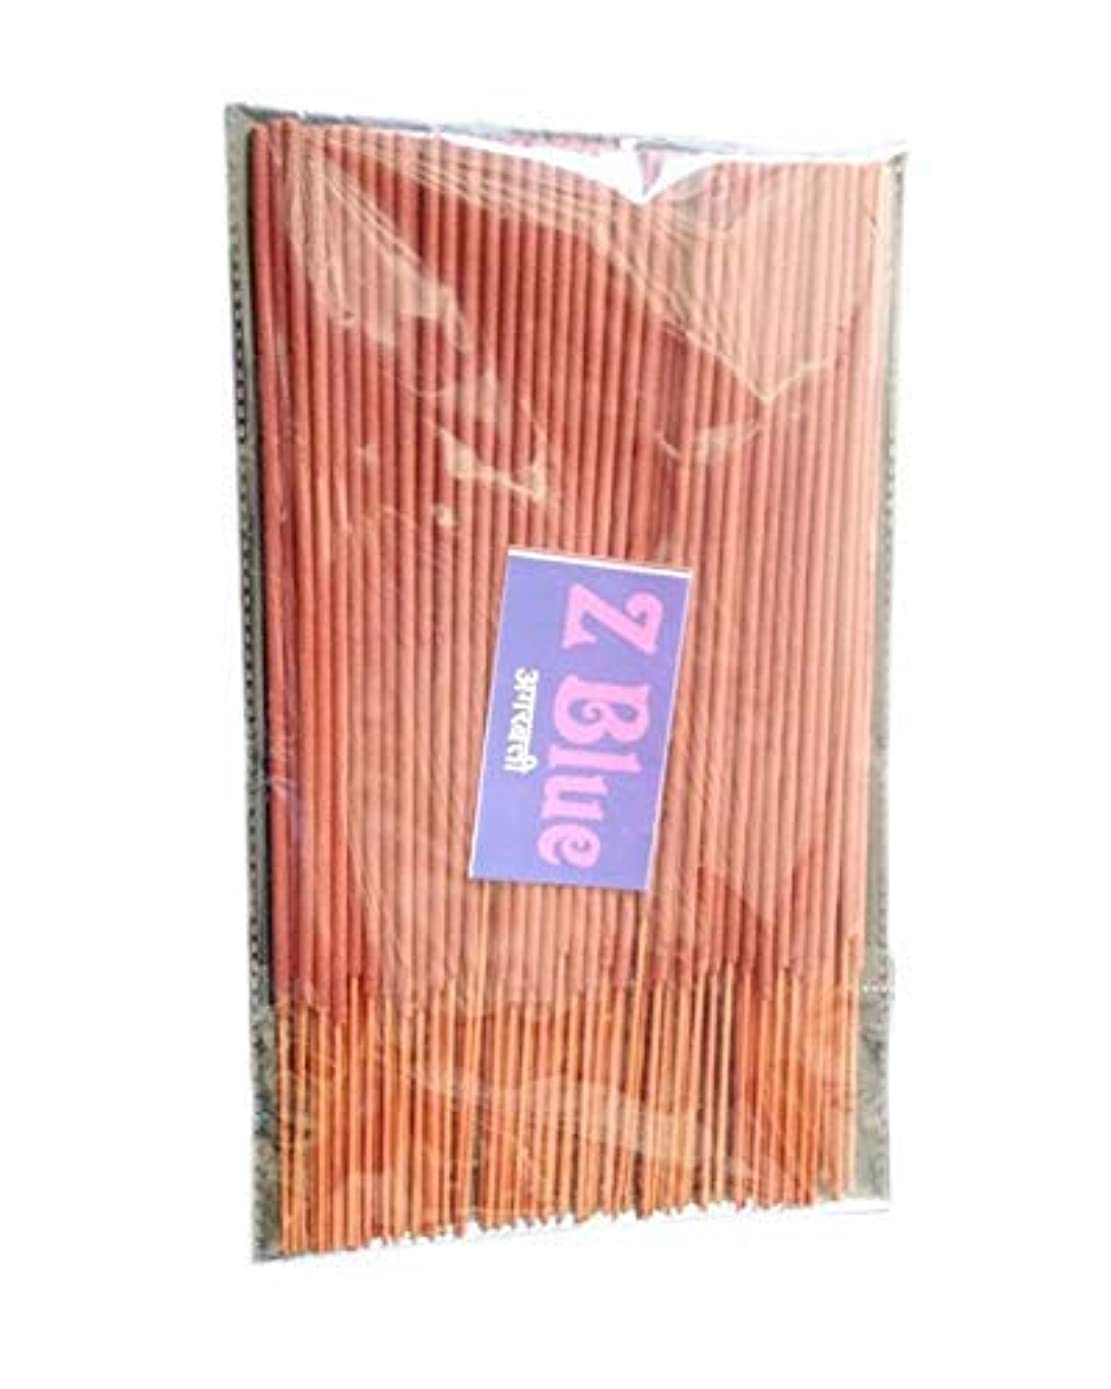 鉄道きしむ怖がって死ぬDarshan Z Blue Incense Sticks/Agarbatti (200 GM Pack)